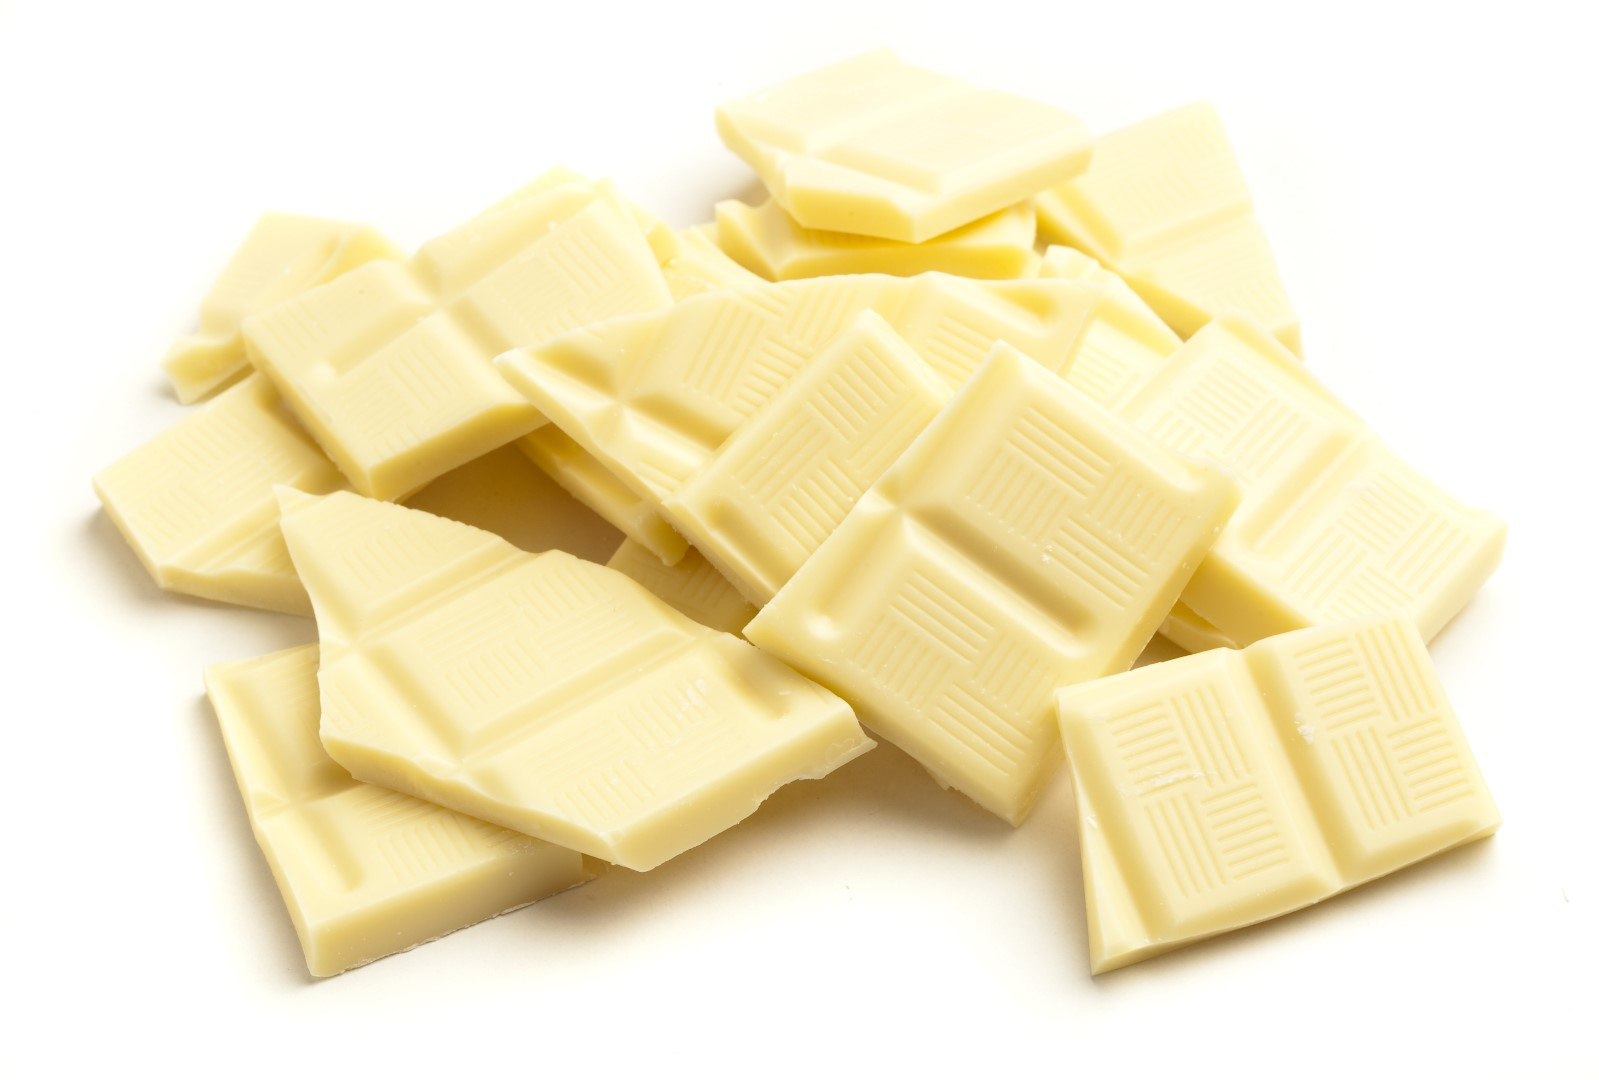 1930 – Witte chocolade